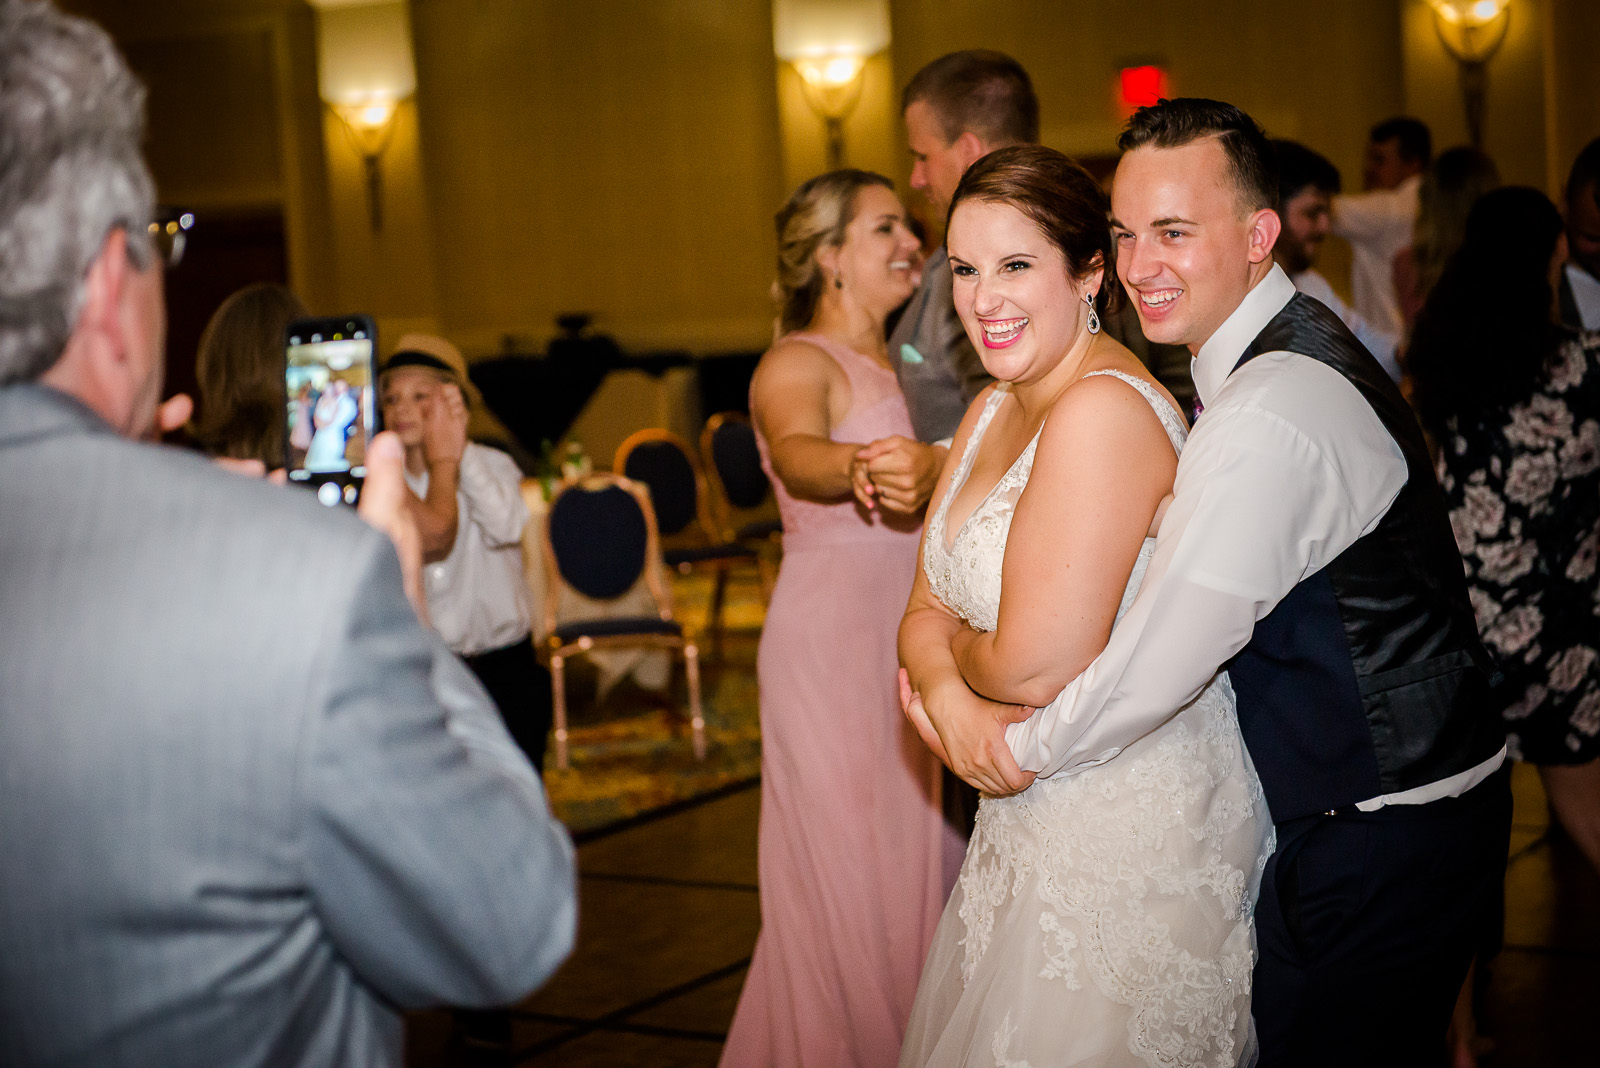 Eric_and_Christy_Photography_Blog_2018_Wed_moments-60